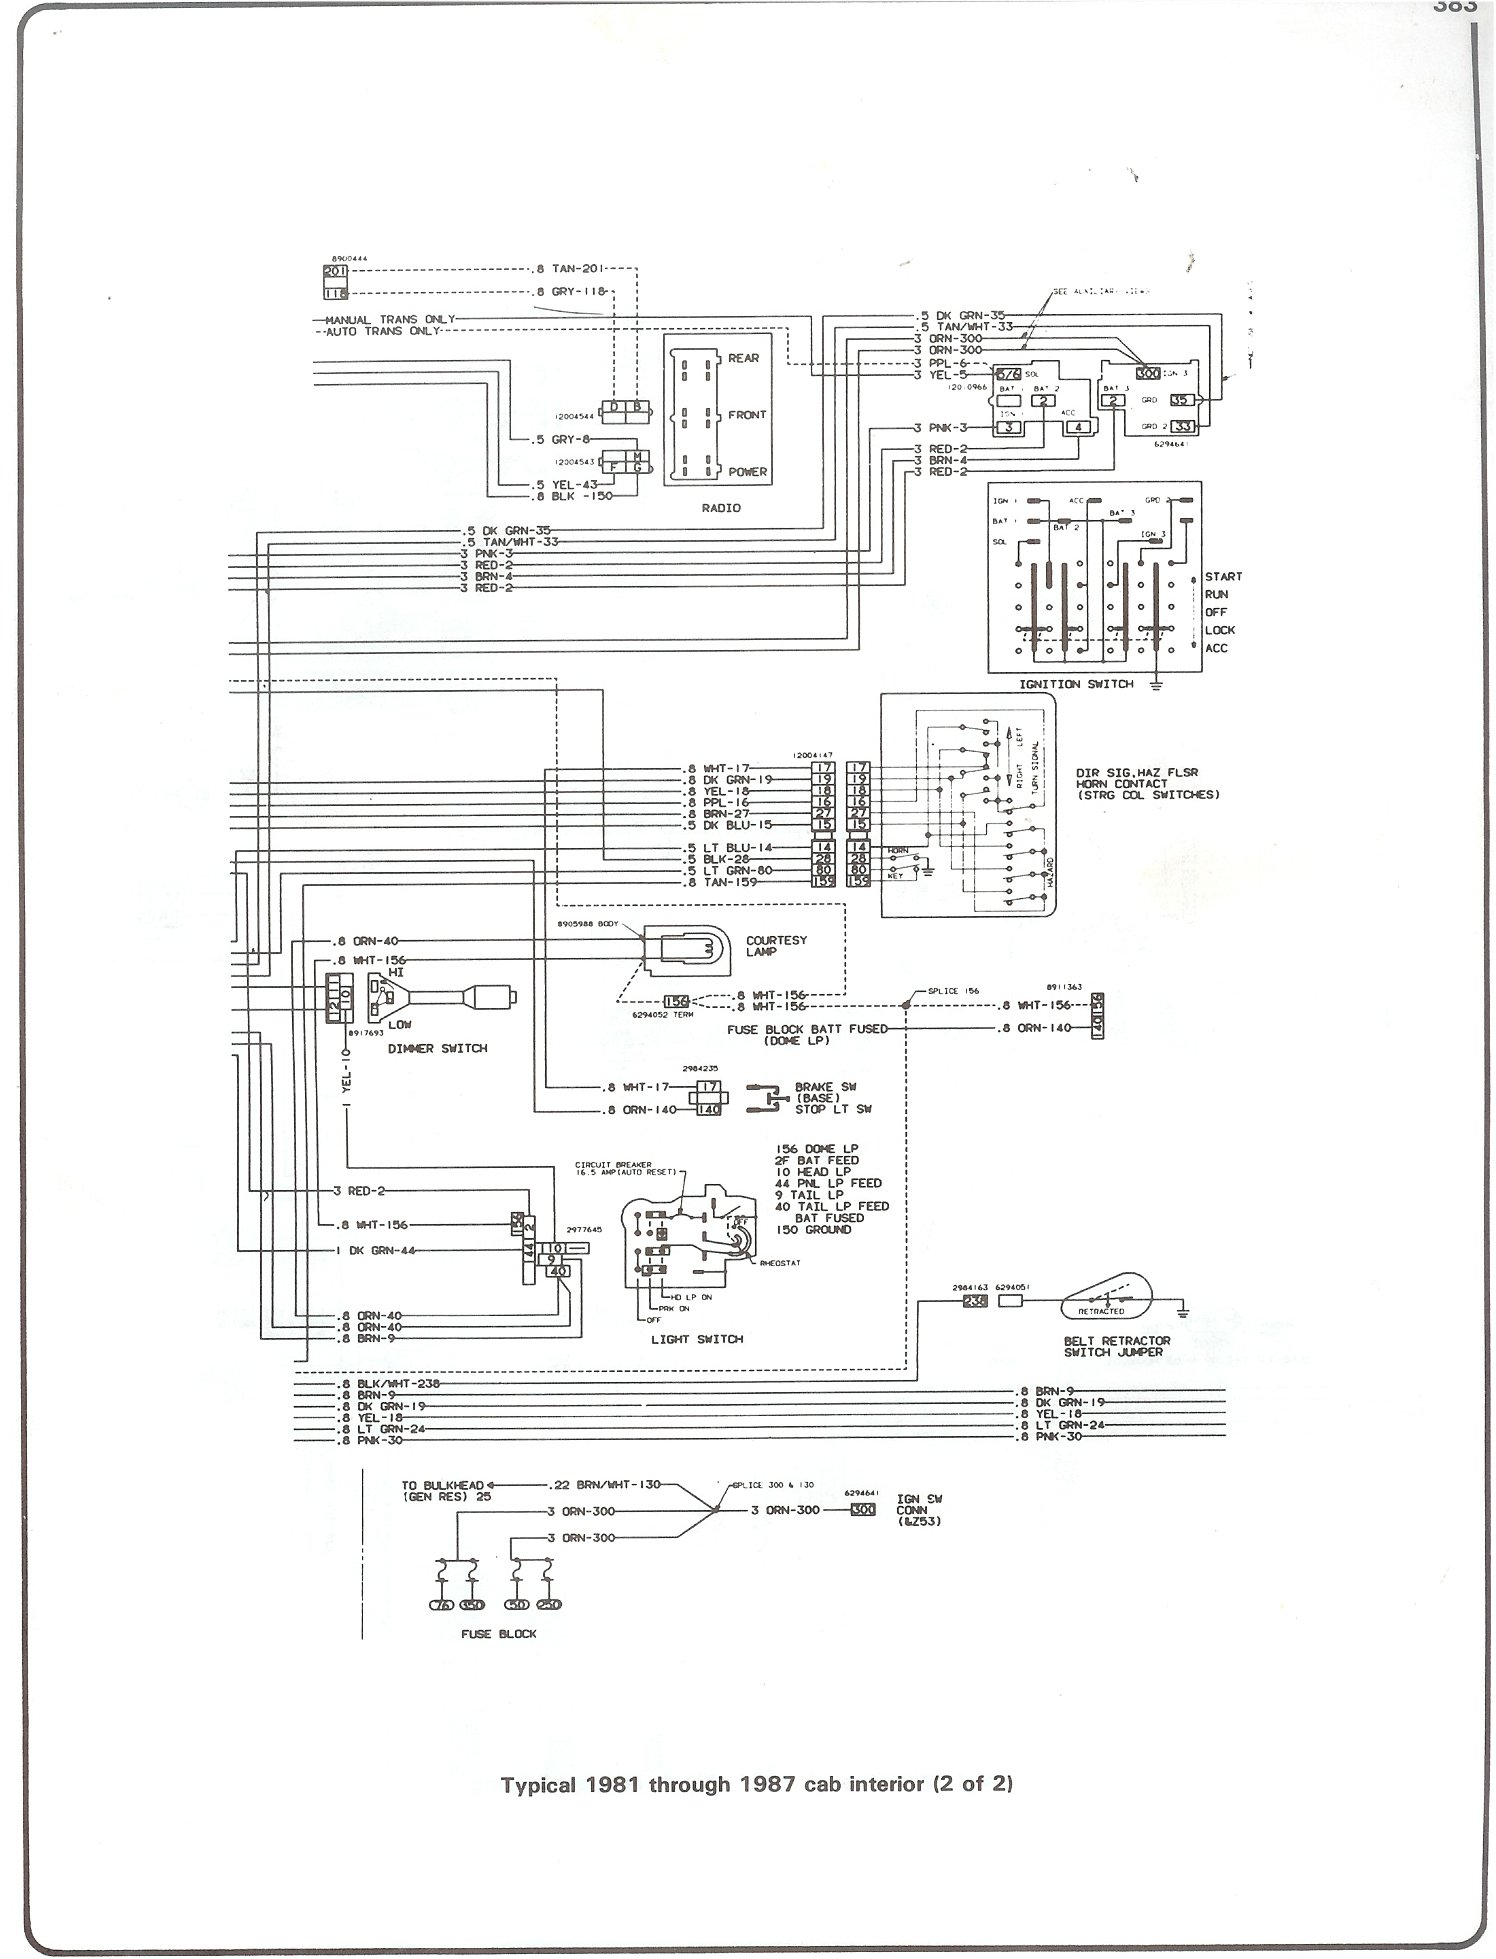 Complete 73-87 Wiring Diagrams on 84 corvette wiring diagram, 84 k2500 wiring diagram, 84 camaro wiring diagram, 84 caprice wiring diagram, 84 k5 blazer wiring diagram, 84 cavalier wiring diagram, 84 k20 wiring diagram,